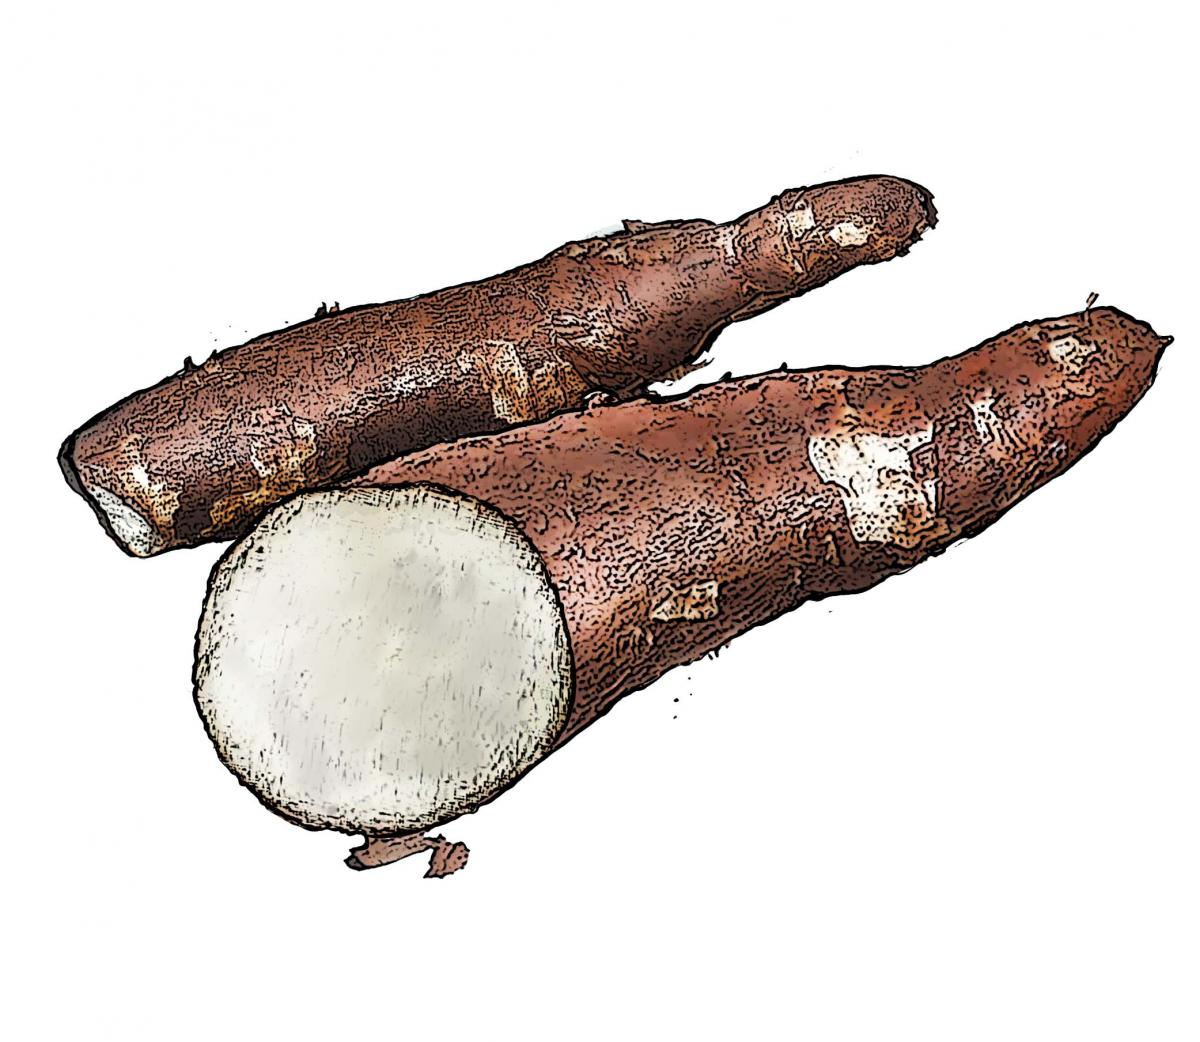 Food - Cassava - 00B - Non-country specific